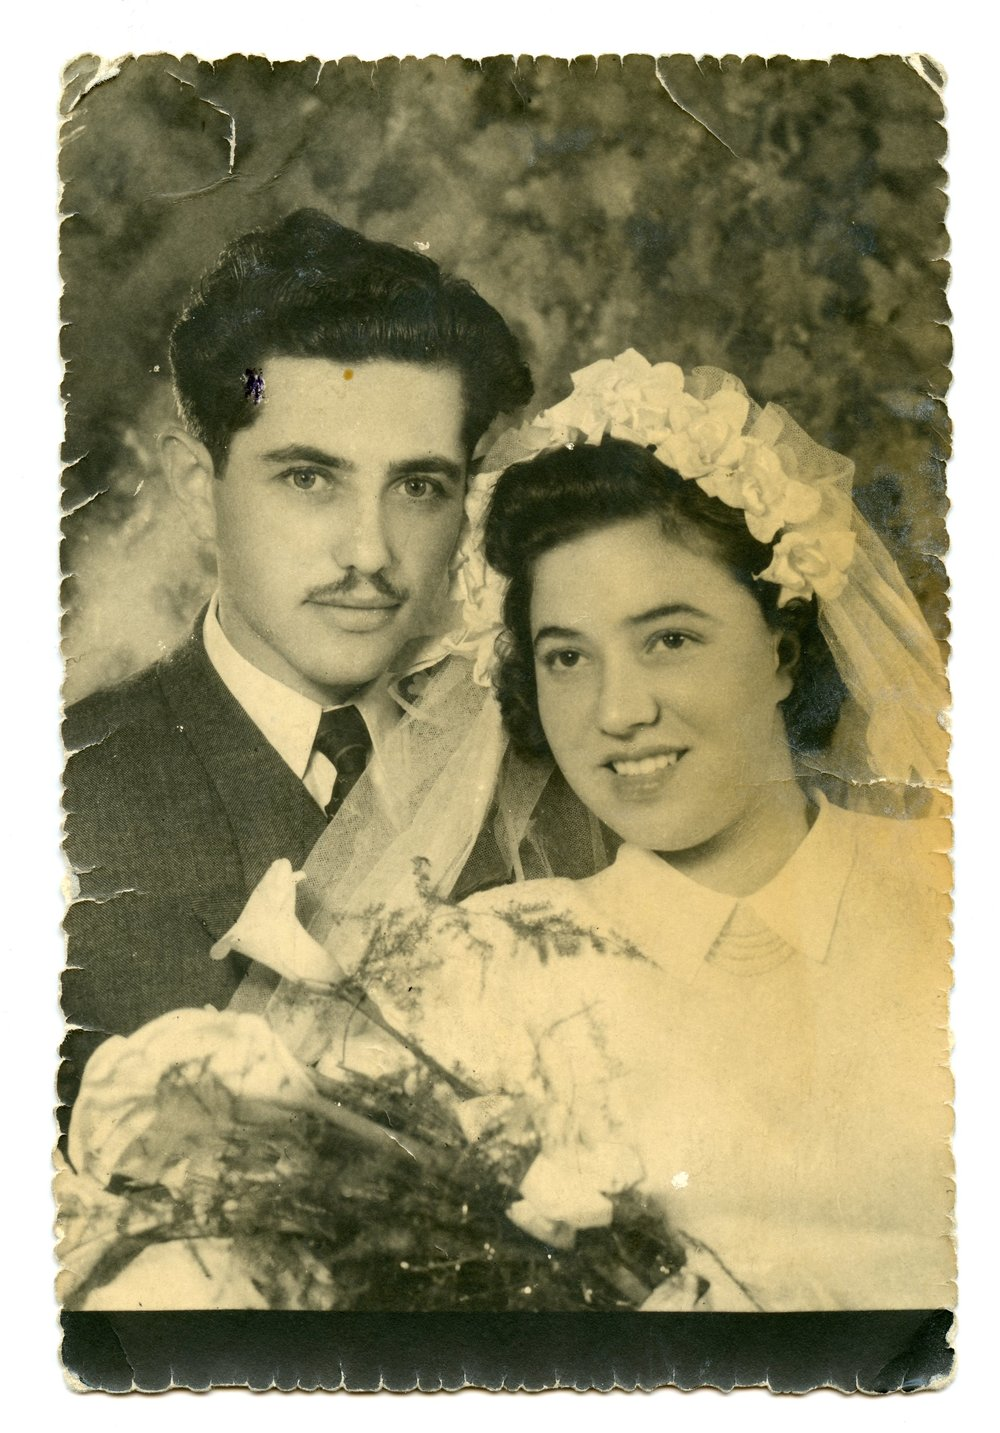 February 19, 1952 Aron (21) and Cipora (18) married in Beit Shan, Israel